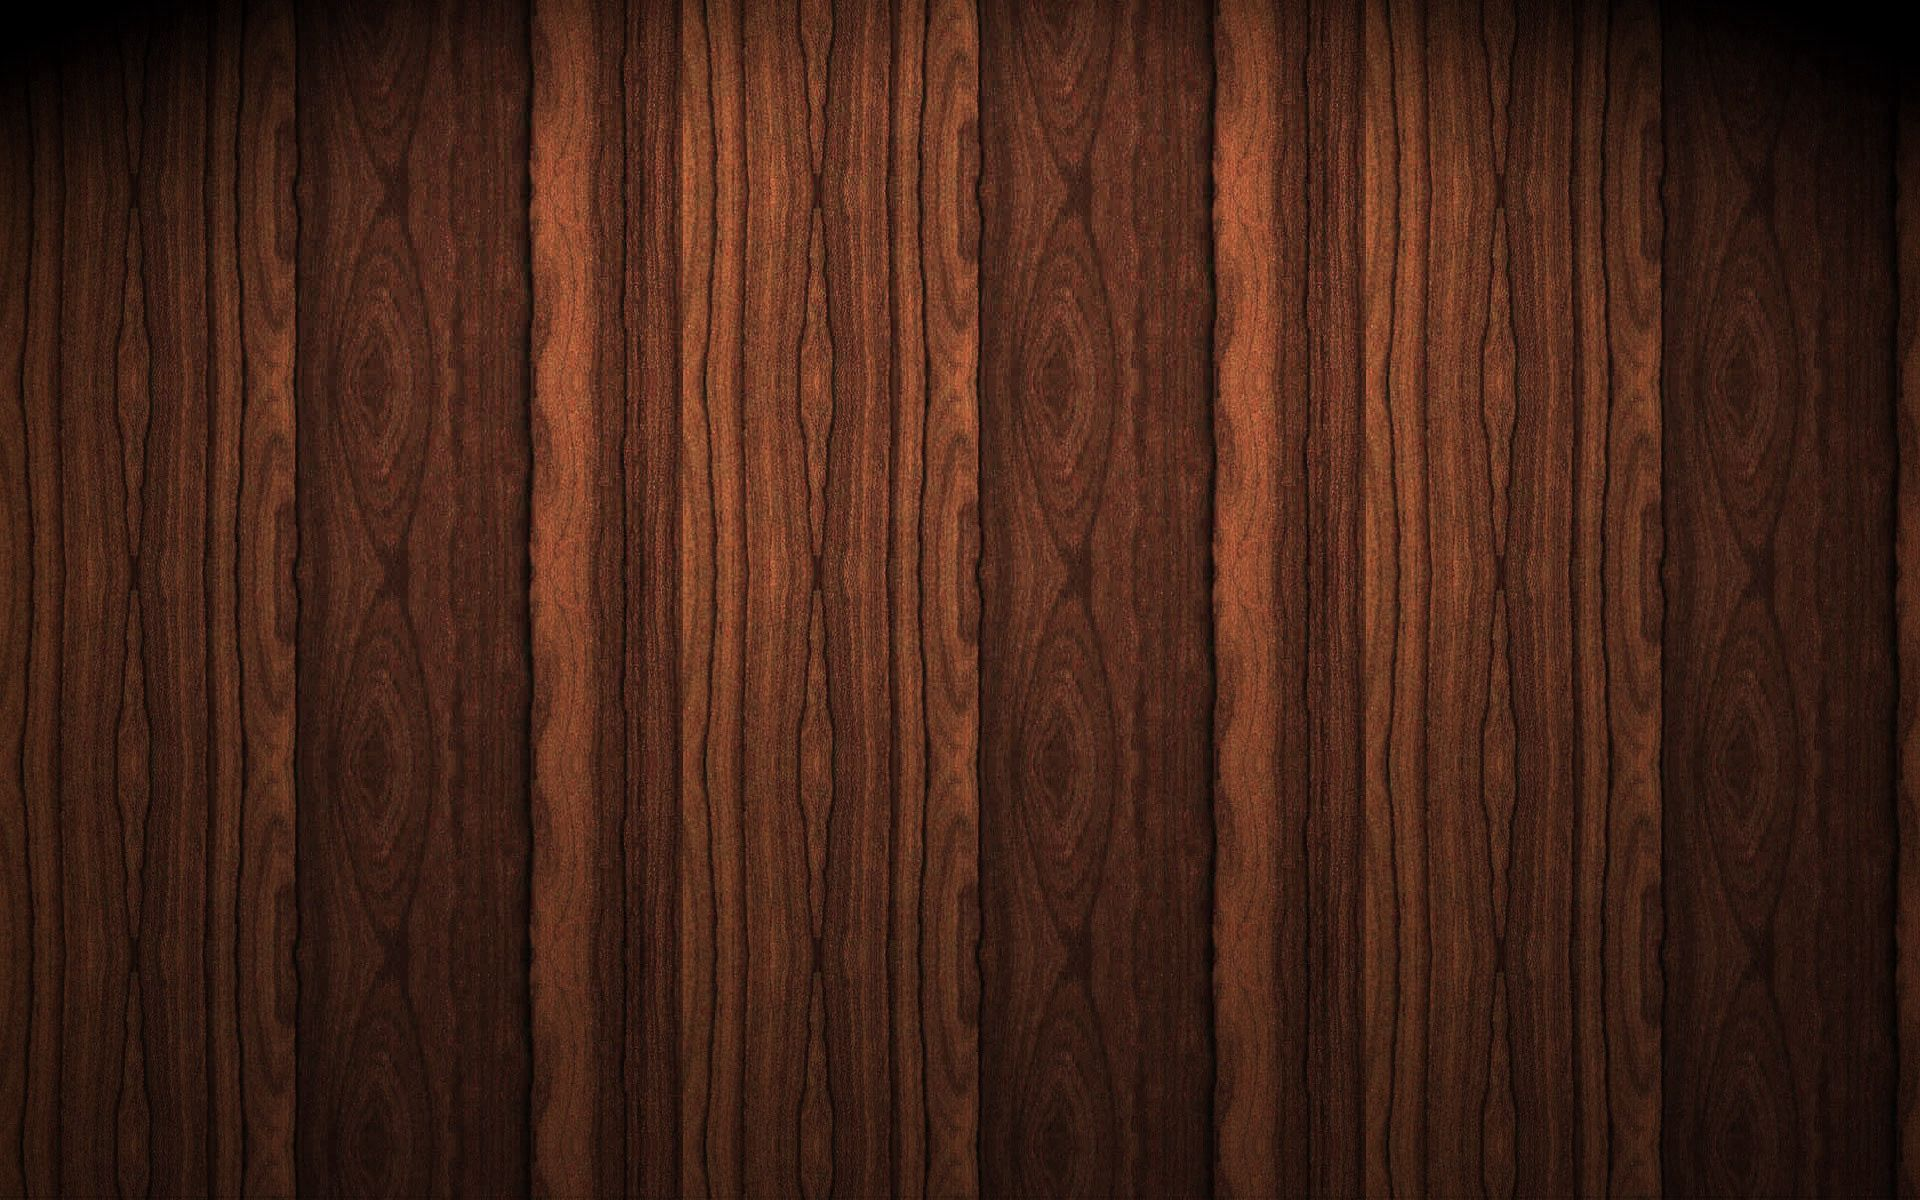 93186 download wallpaper Textures, Texture, Planks, Board, Wood, Wooden, Light Coloured, Light, Surface screensavers and pictures for free